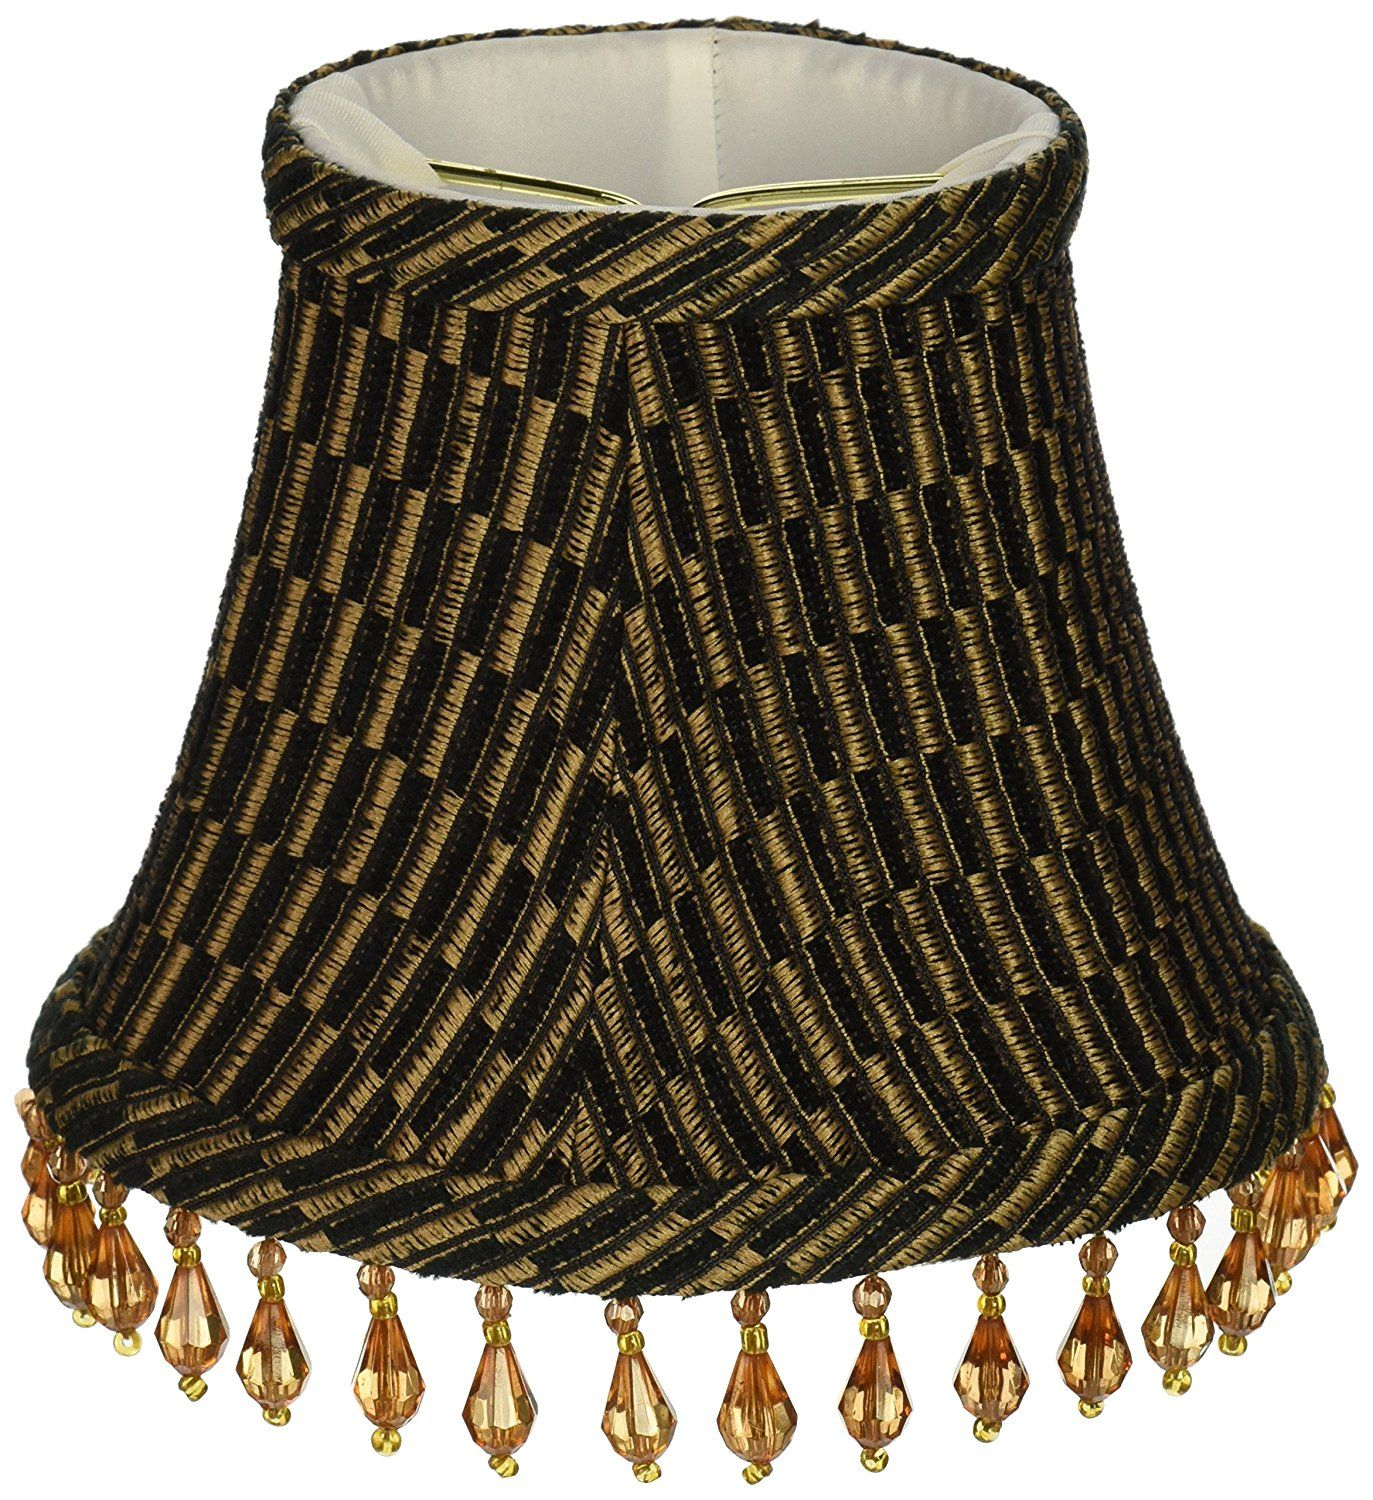 Lamp: Chandelier Lamp Shades Upgradelights Set Of 6 Barrel Shades ...